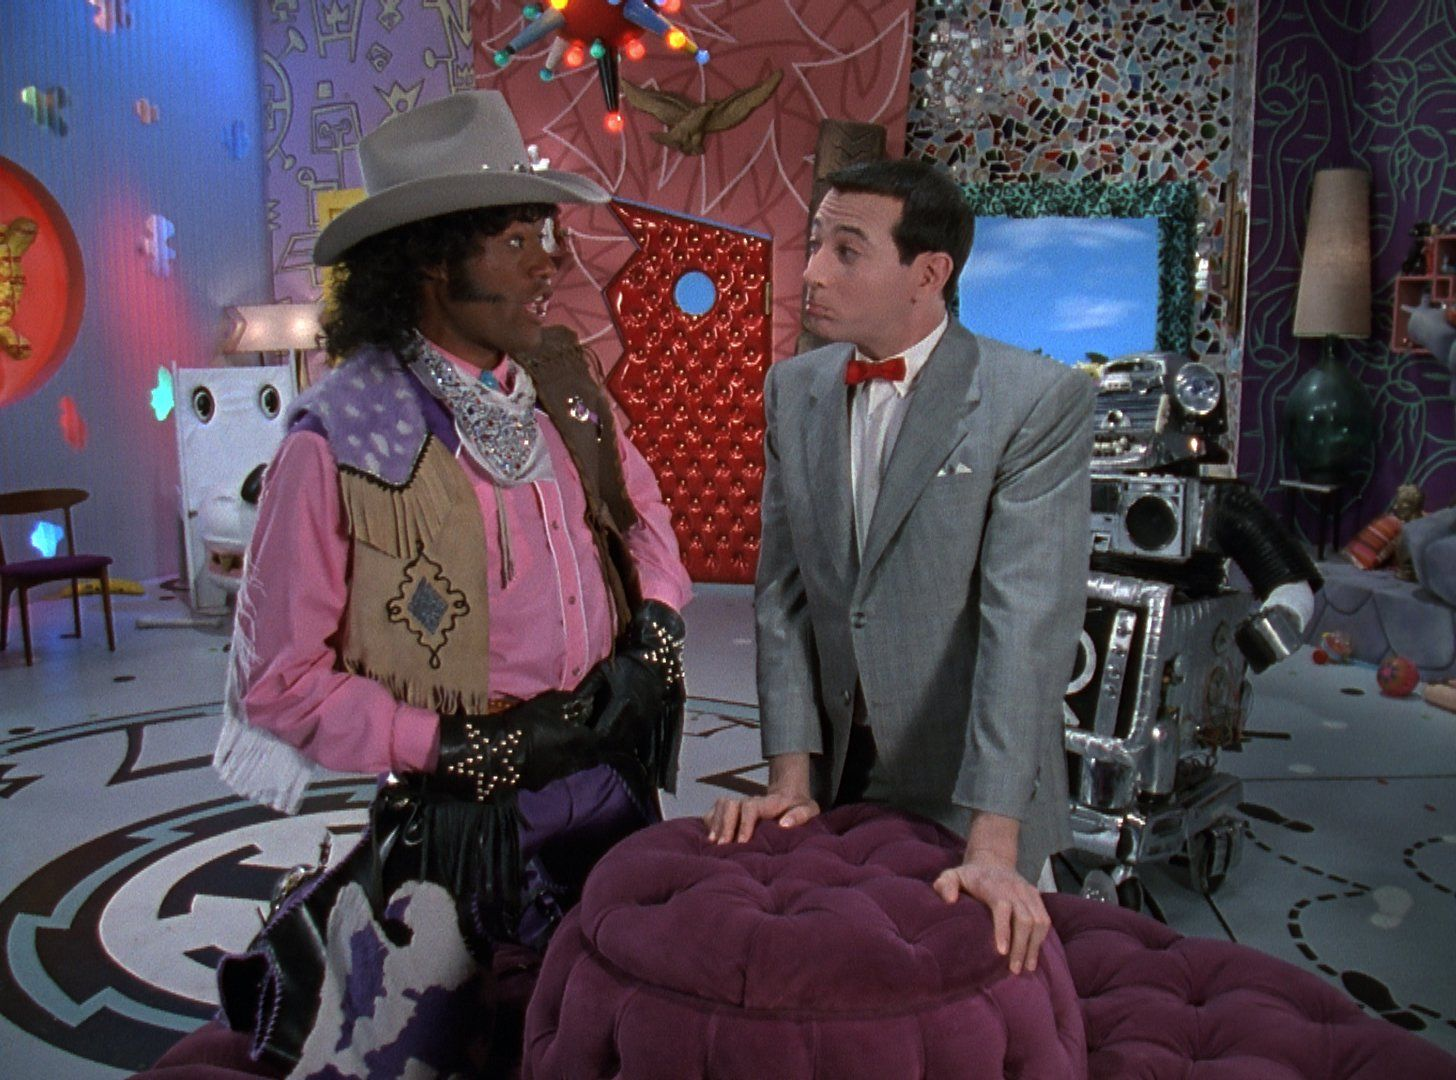 Cowboy Curtis (Laurence Fishburne) and Pee-wee